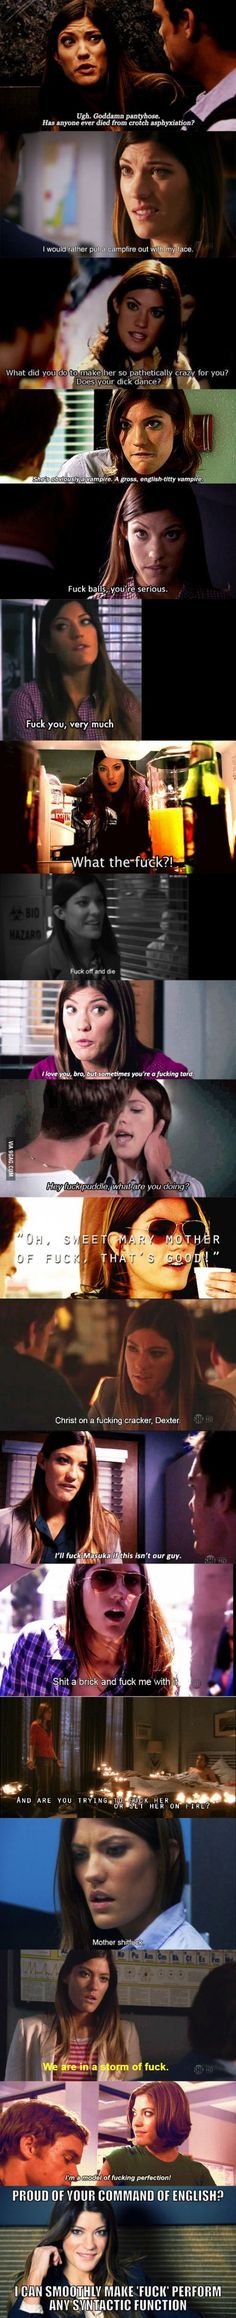 Just some Debra Morgan quotes